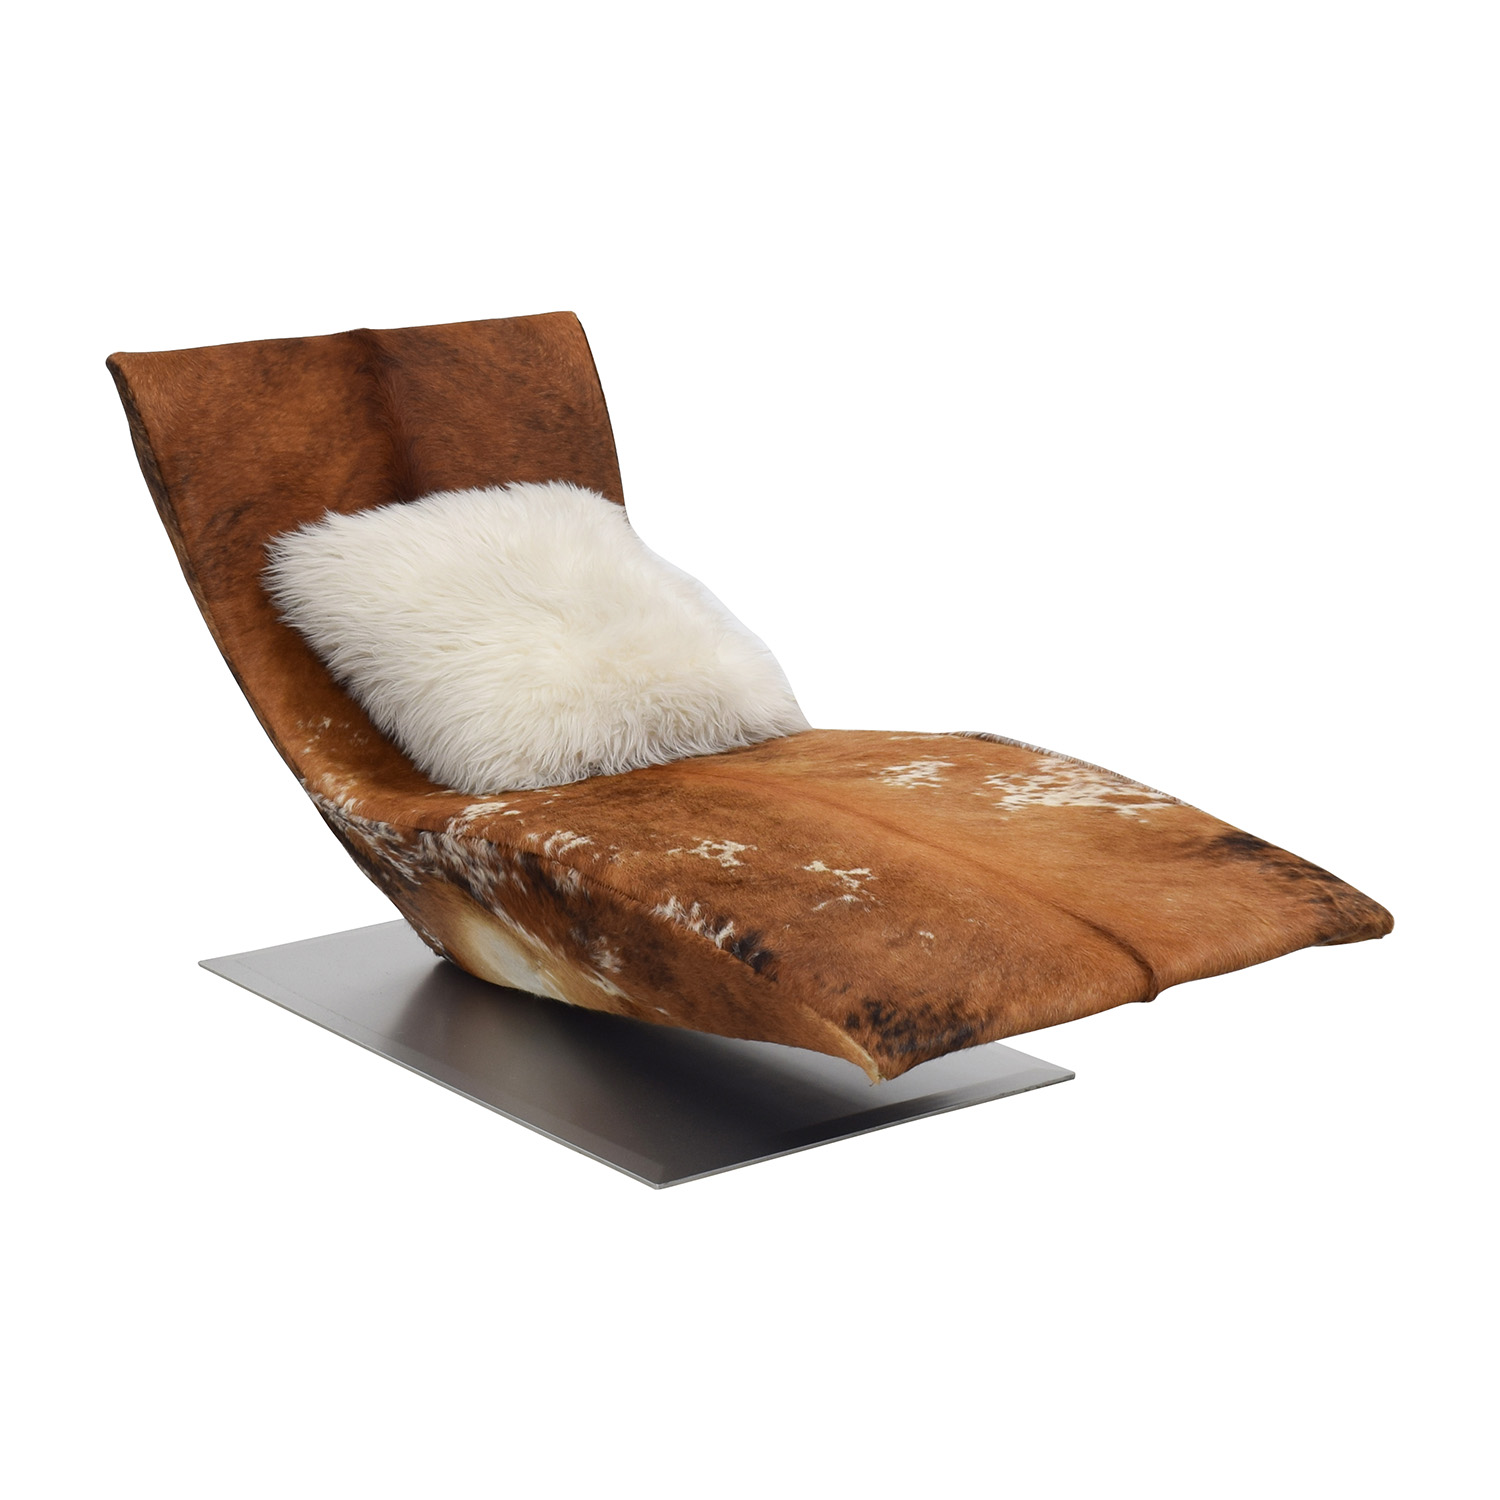 Cow Hide Chair 44 Off Leather Cow Hide Accent Chaise Chair Chairs